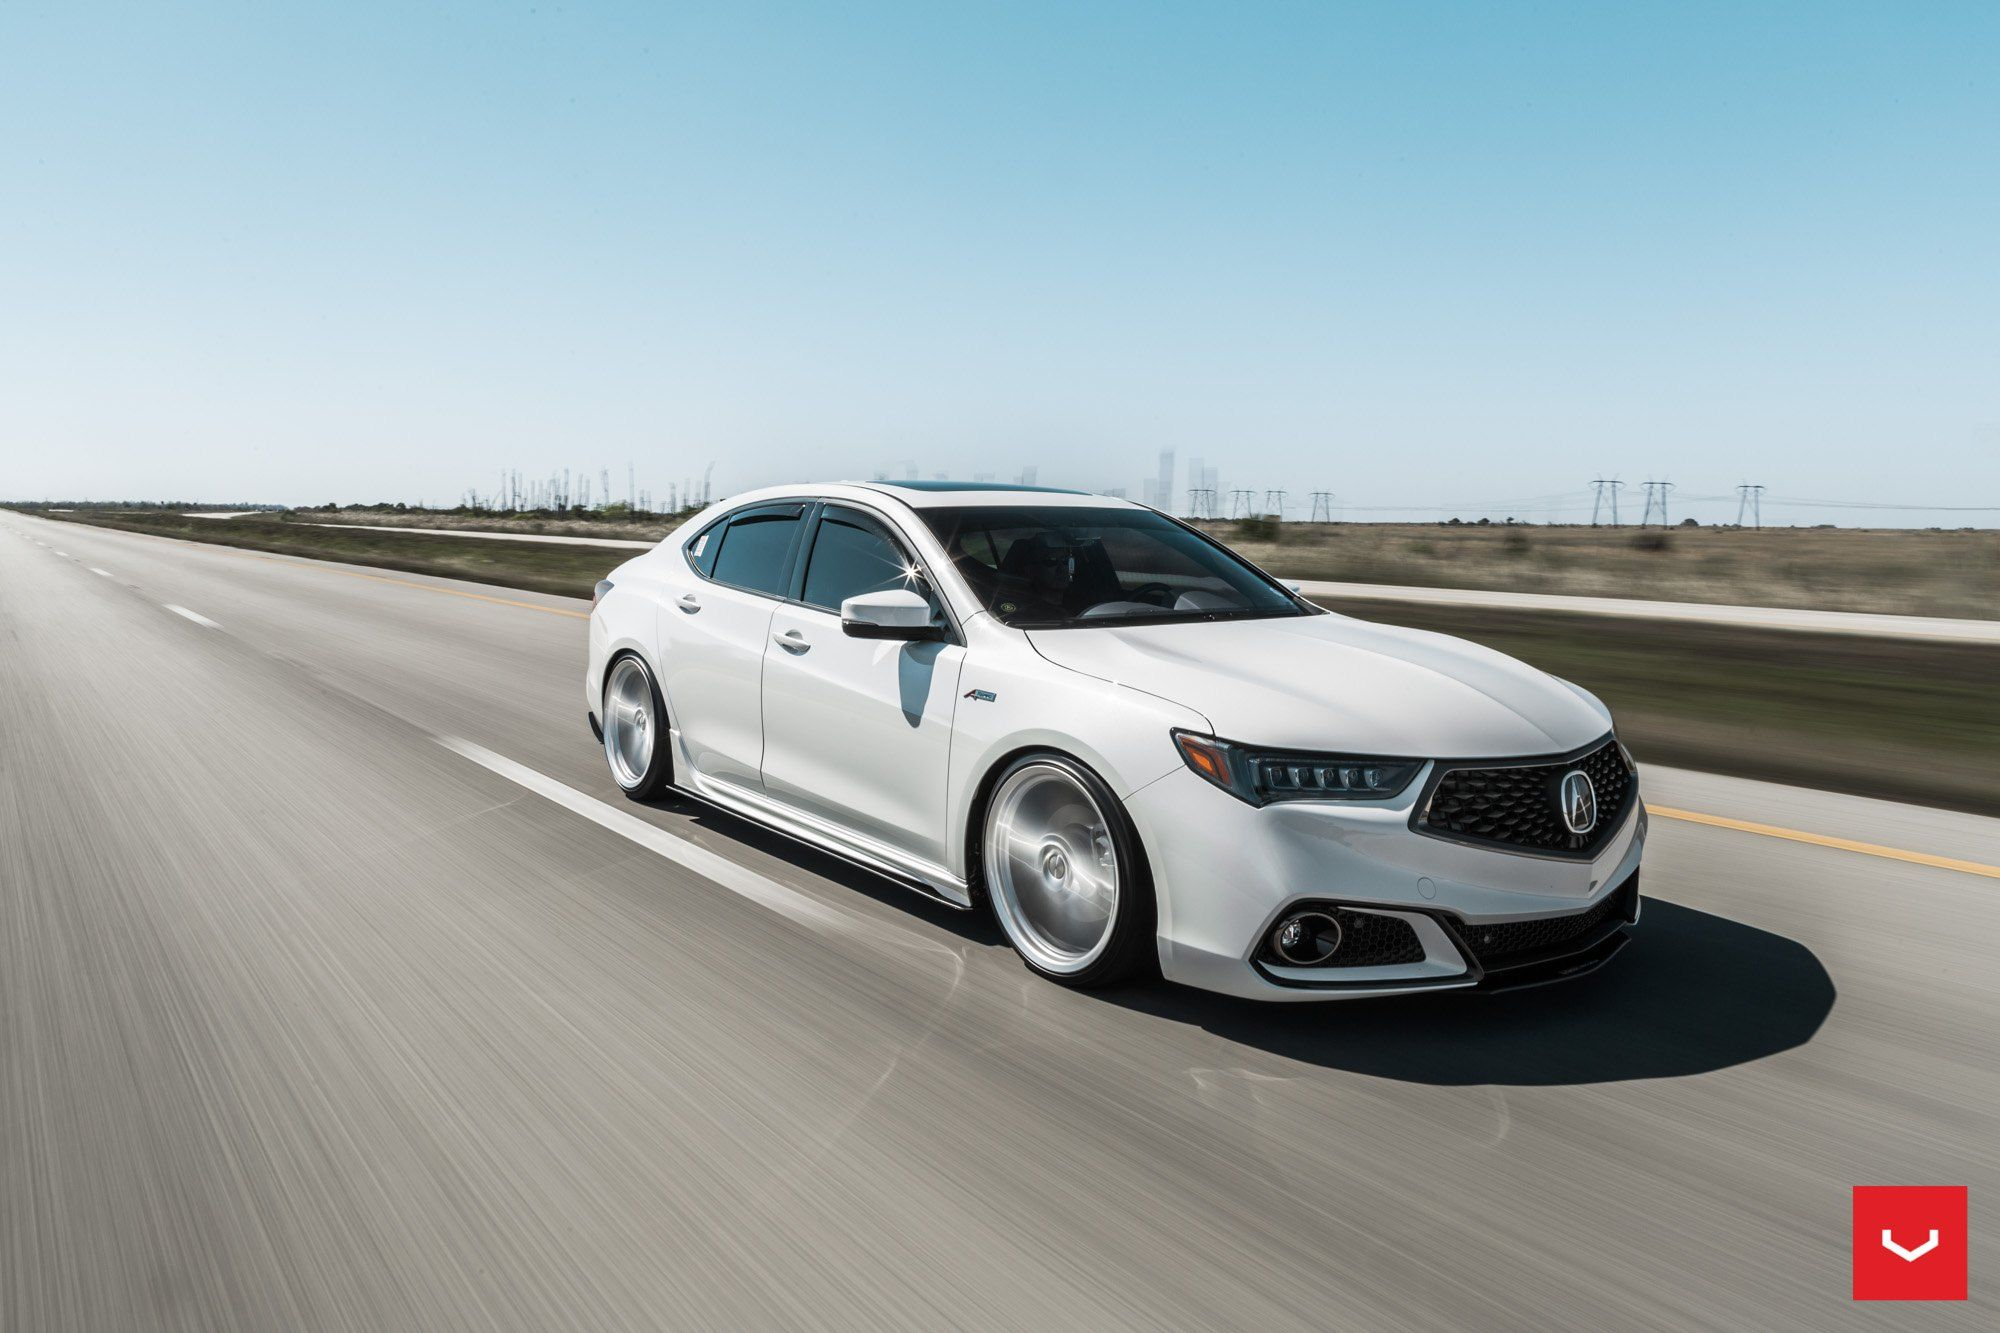 Automotive Eye Candy White Acura Tlx Gets Custom Mesh Grille In 2020 Acura Tlx Acura Automotive